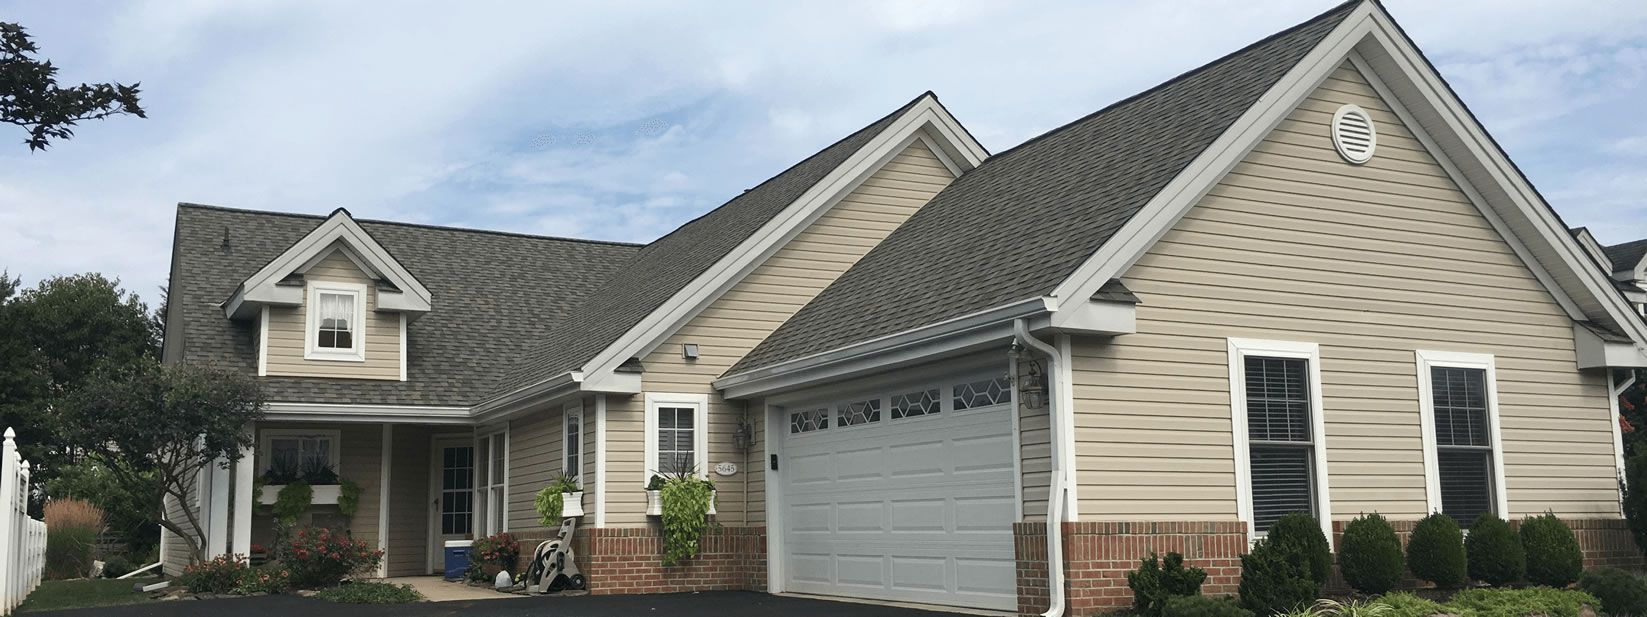 Fenton Michigan Roofing Contractor